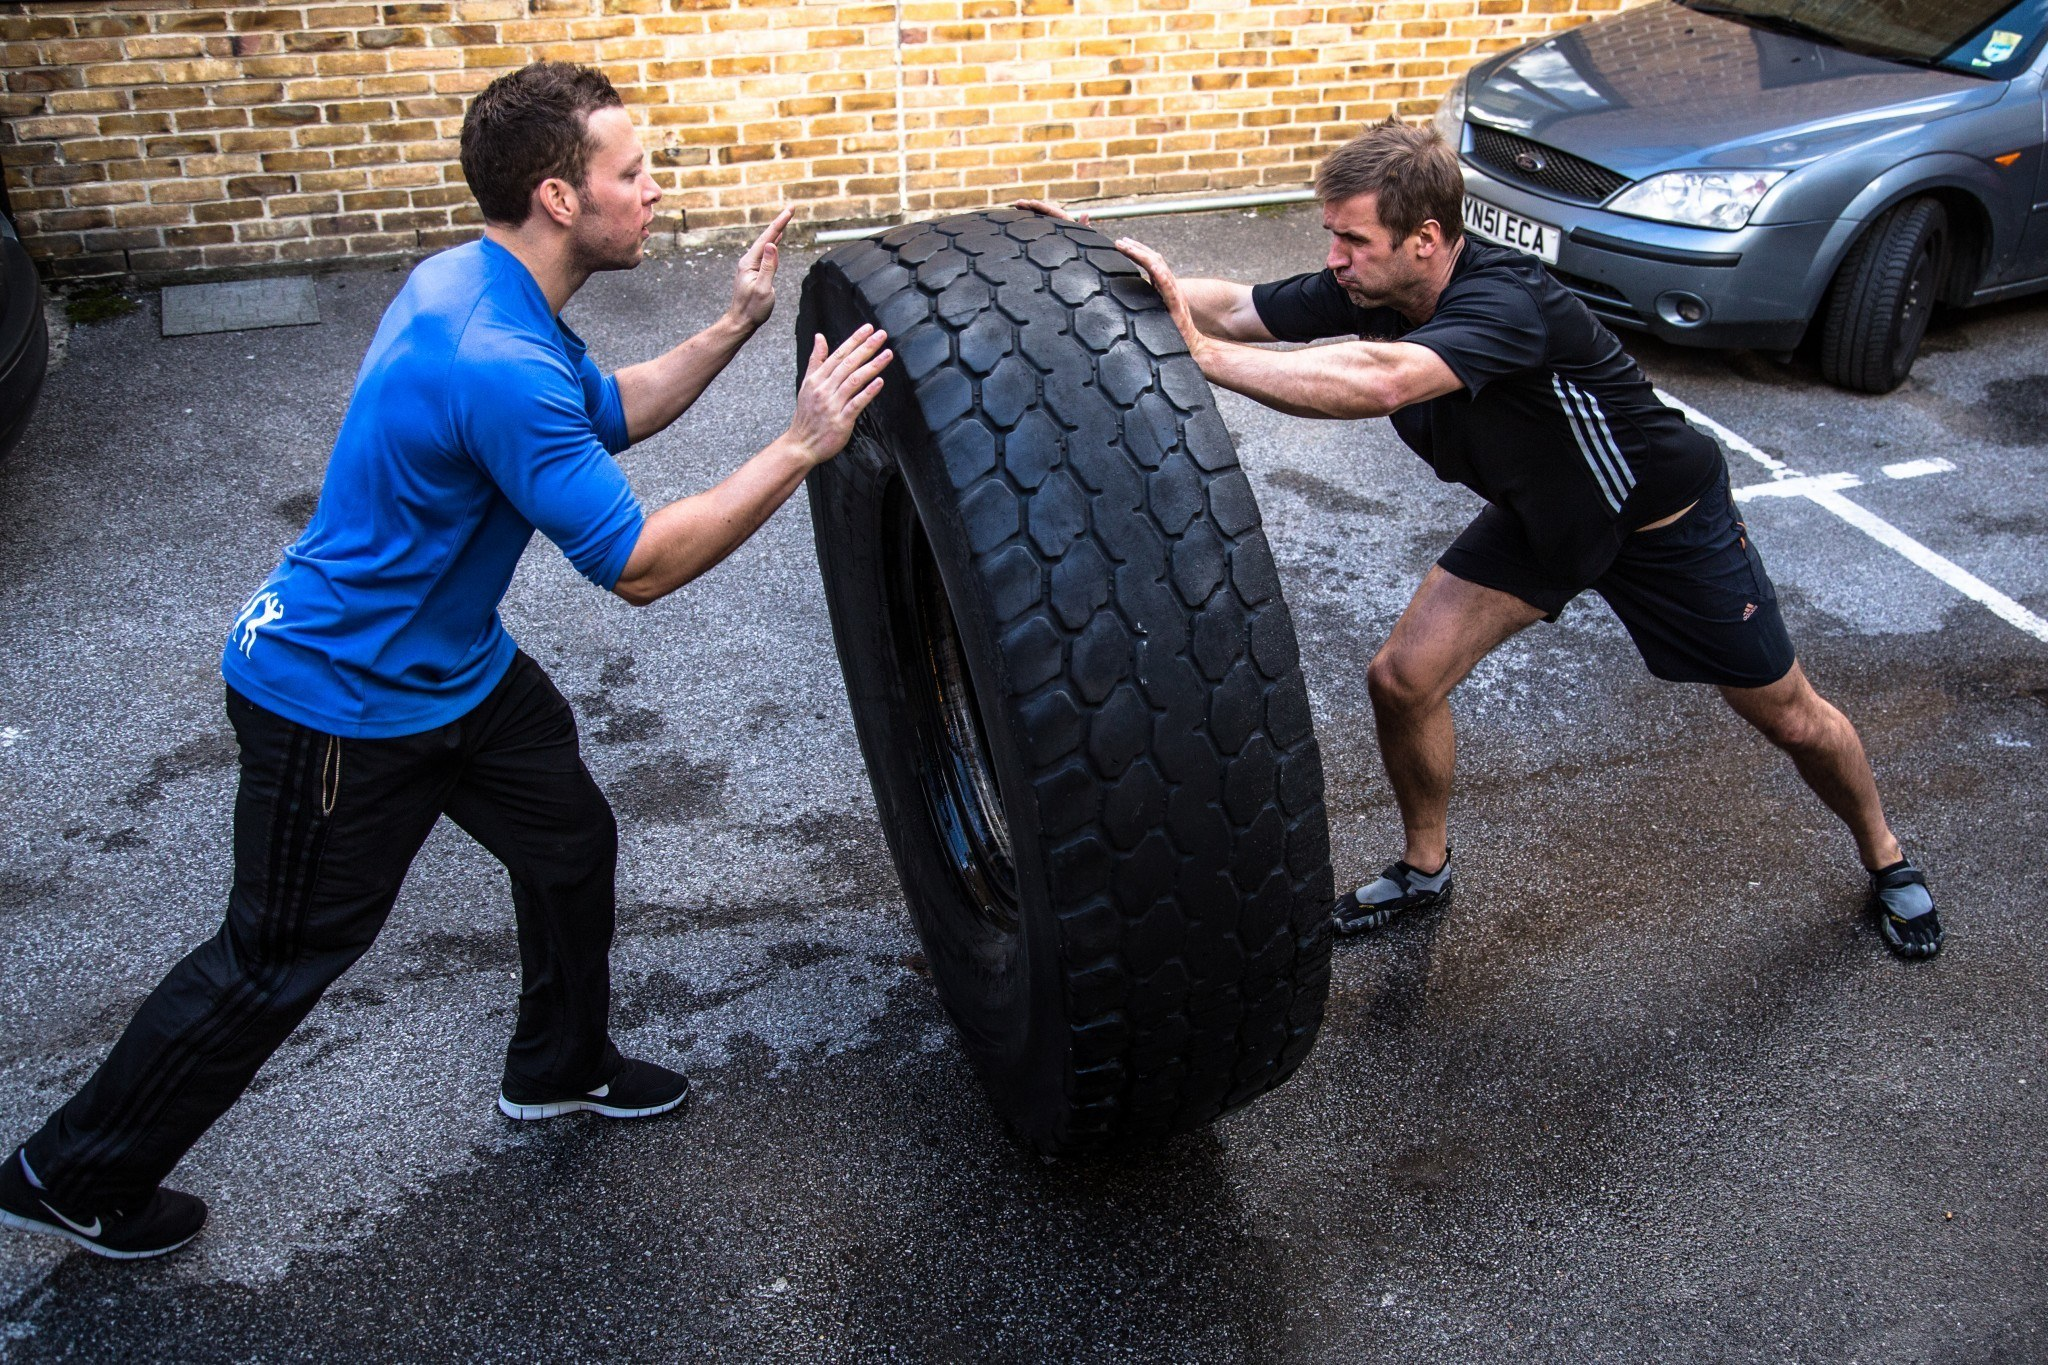 Personal trainer in London doing the tire flip